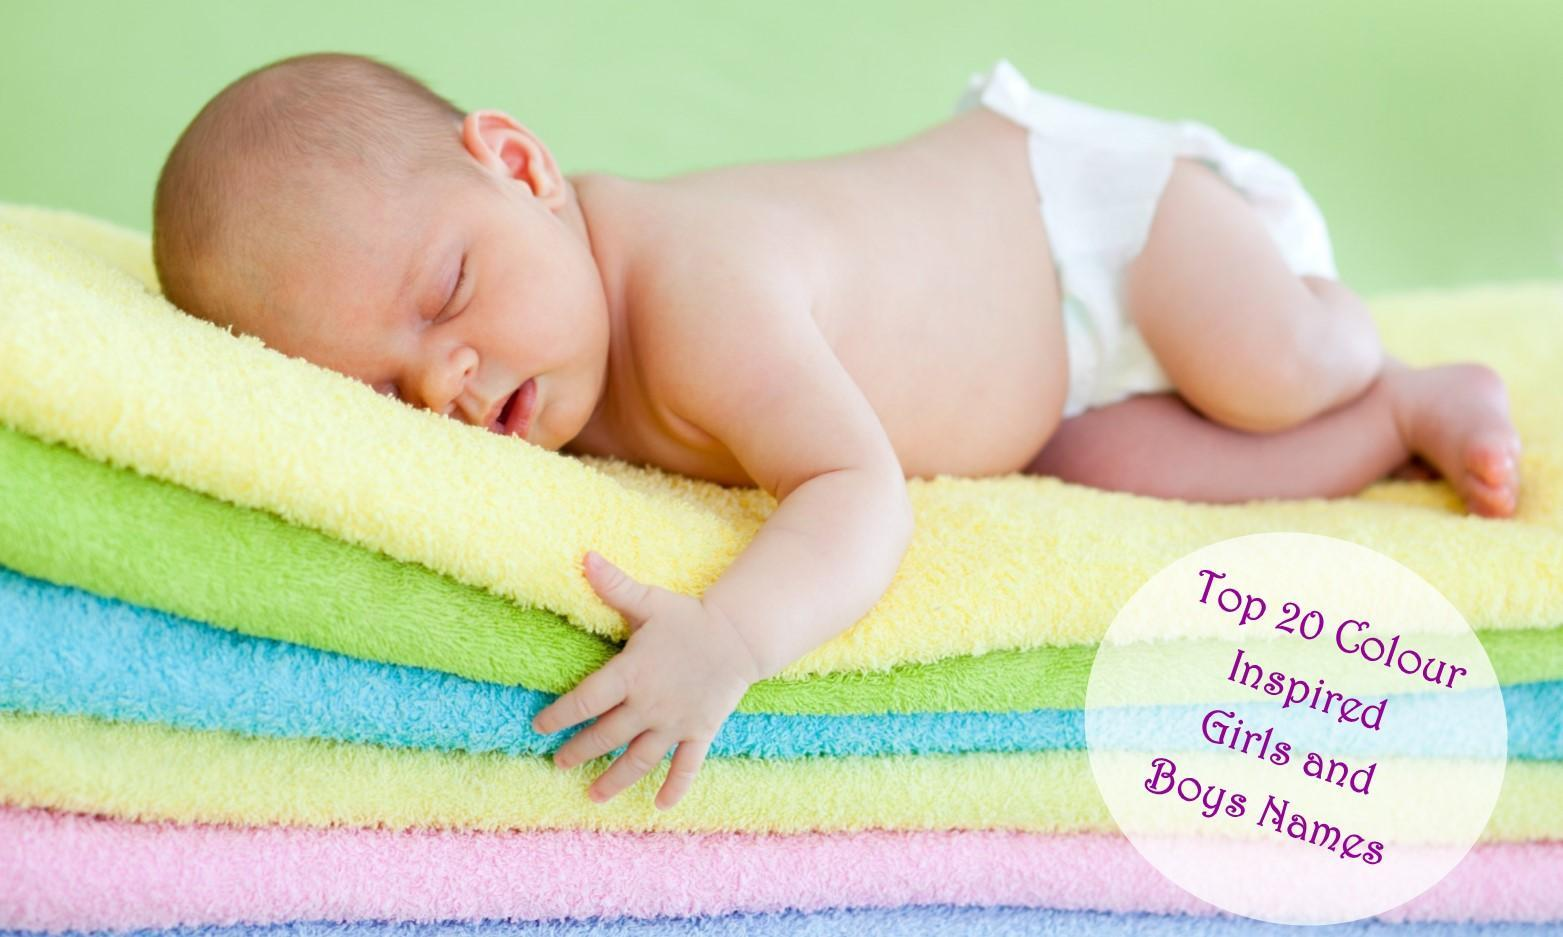 Top 20 Colour inspired Girls and Boys Names